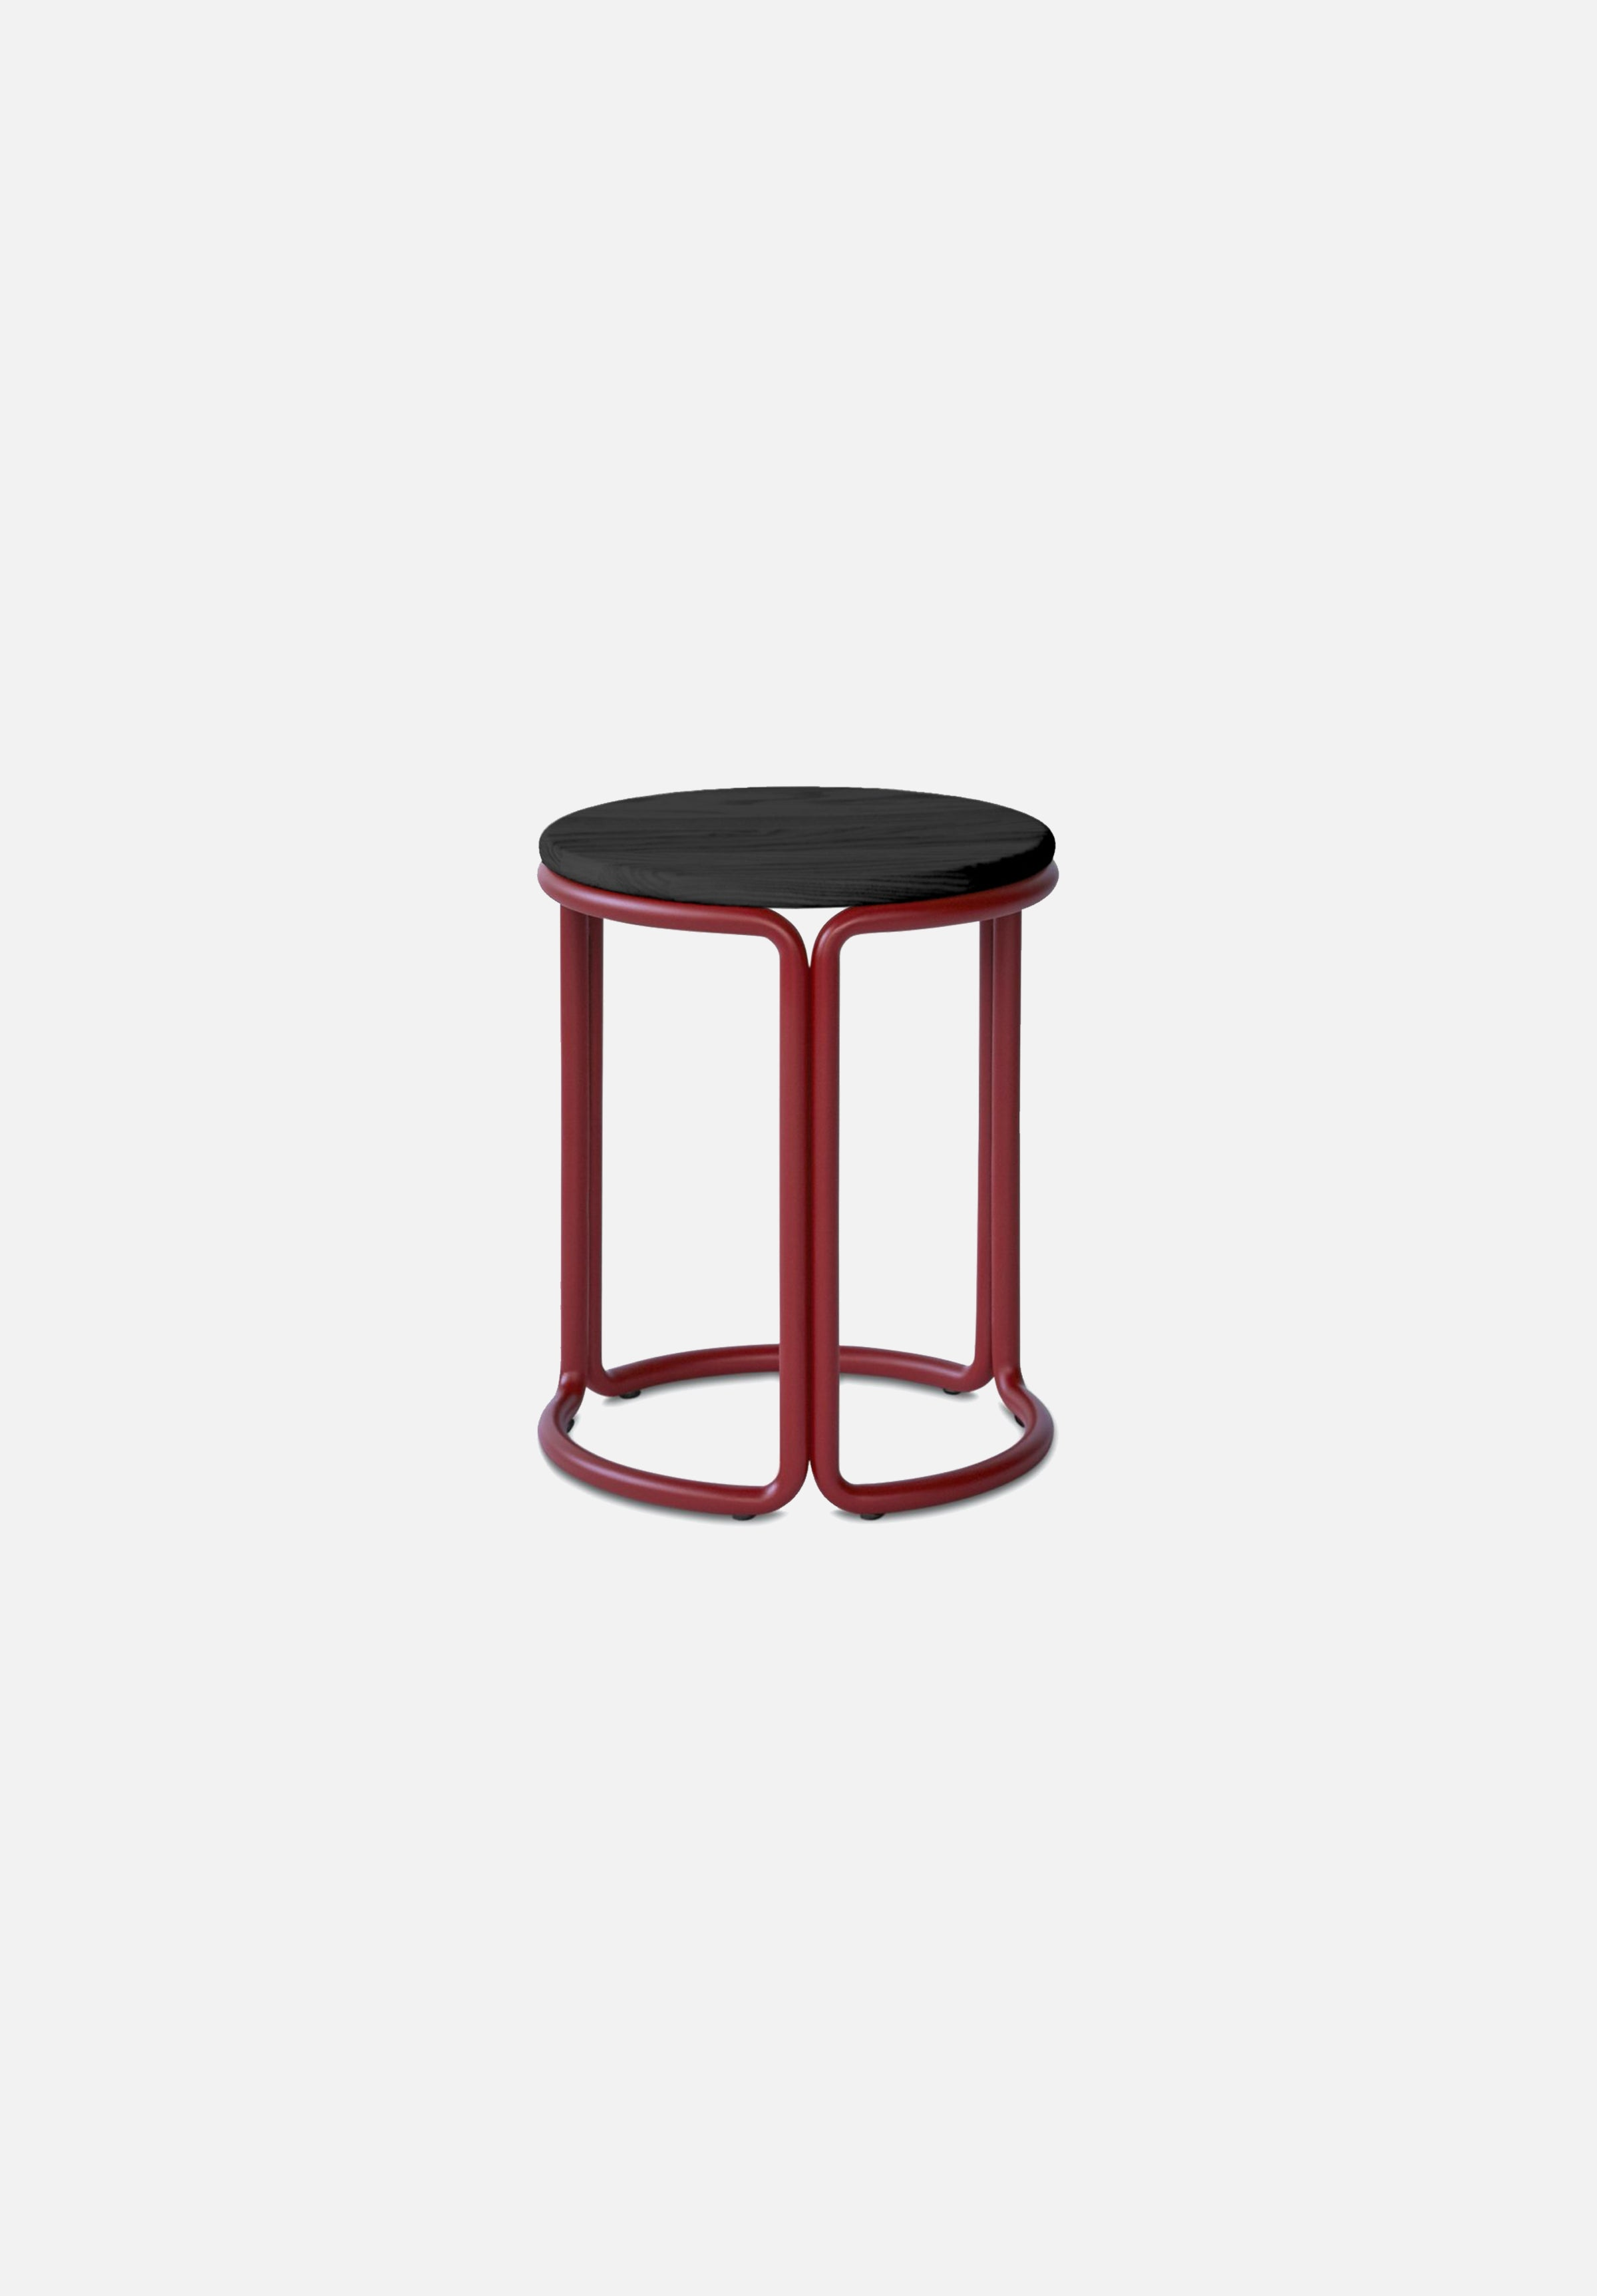 Hardie Stool — Basque Red / Black Ash